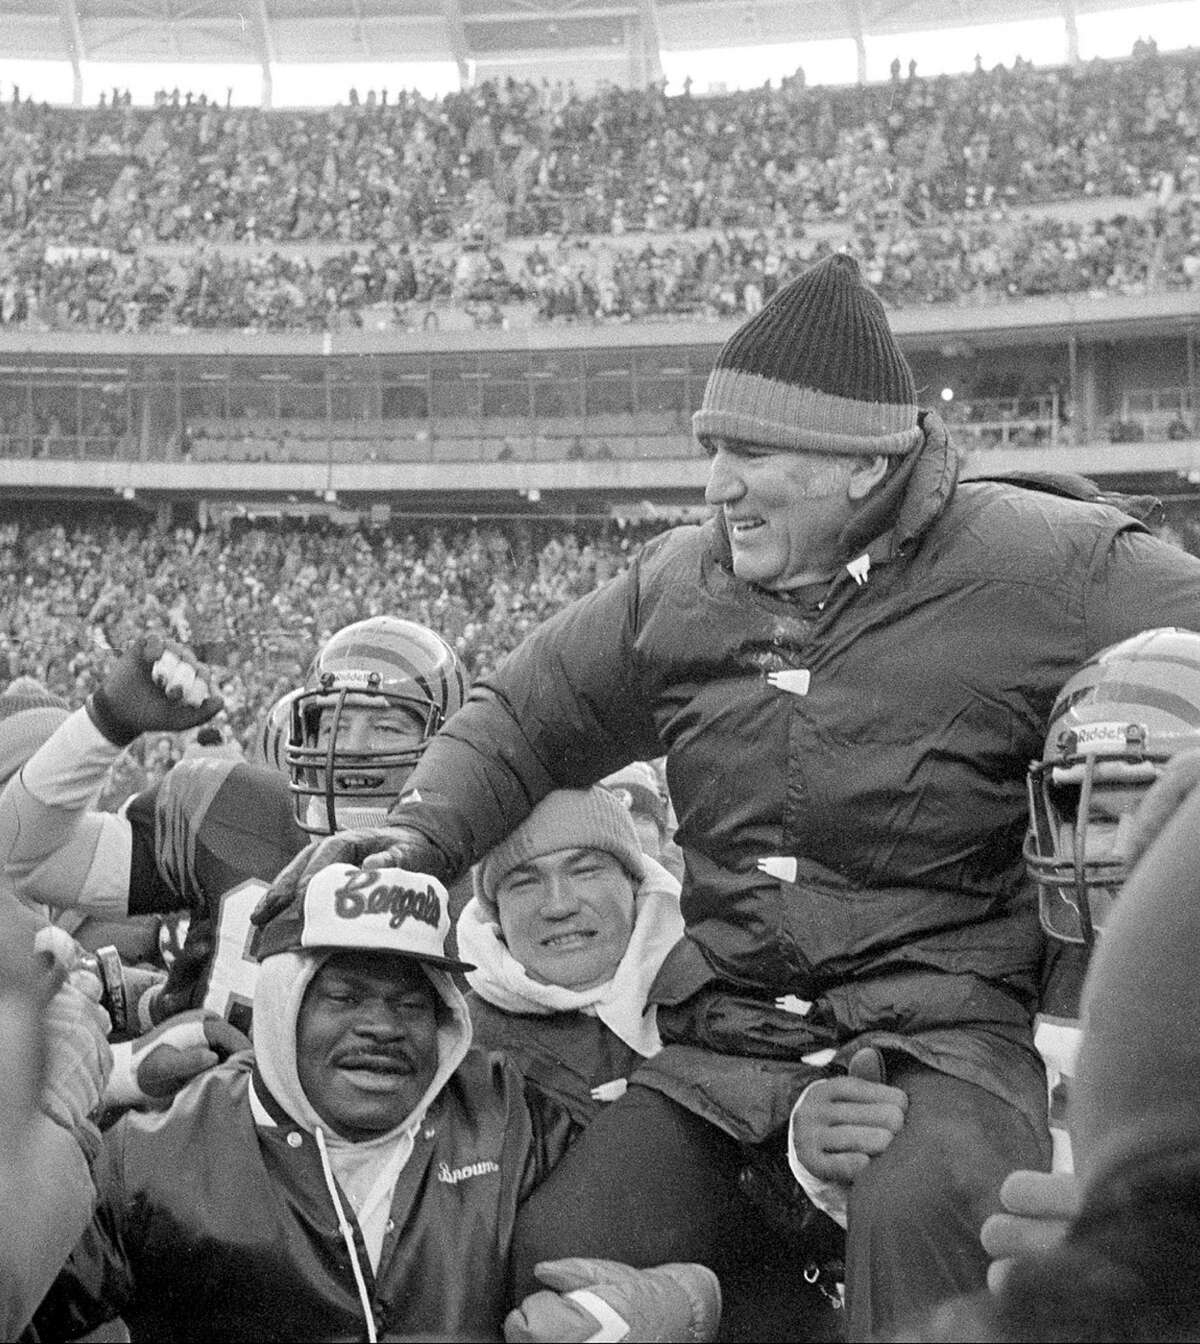 Cincinnati Bengals coach Forrest Gregg is carried off the field by jubilant players and fans after the Bengals defeated the San Diego Chargers in the AFC Championship playoff game in Cincinnati, Ohio, Jan. 10, 1982. The win gives the Bengals their first Super Bowl position. (AP Photo)